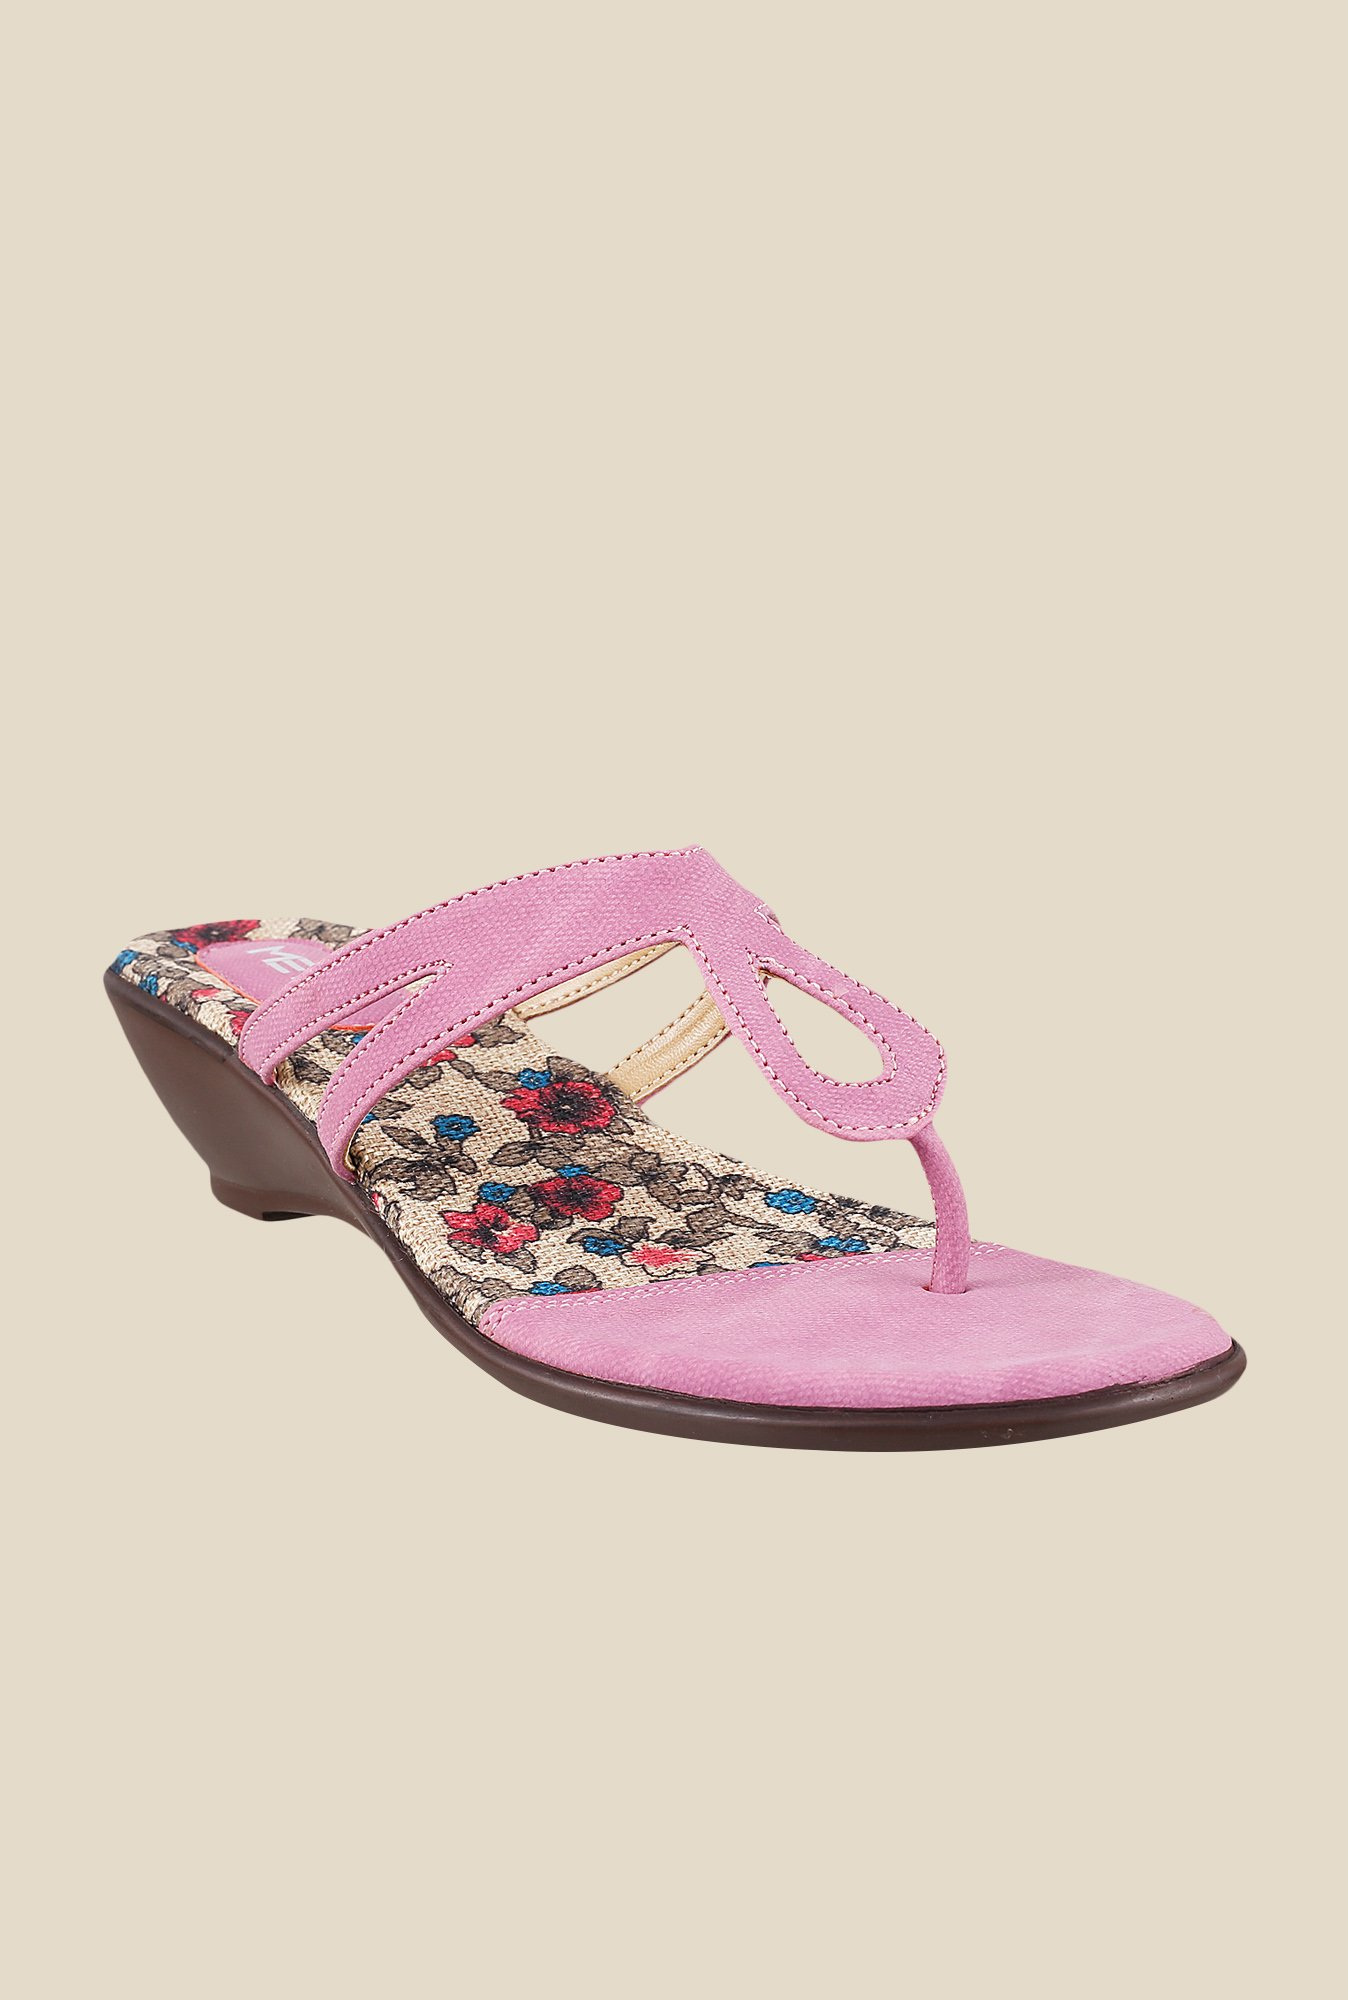 Metro Pink Wedge Heeled Thong Sandals